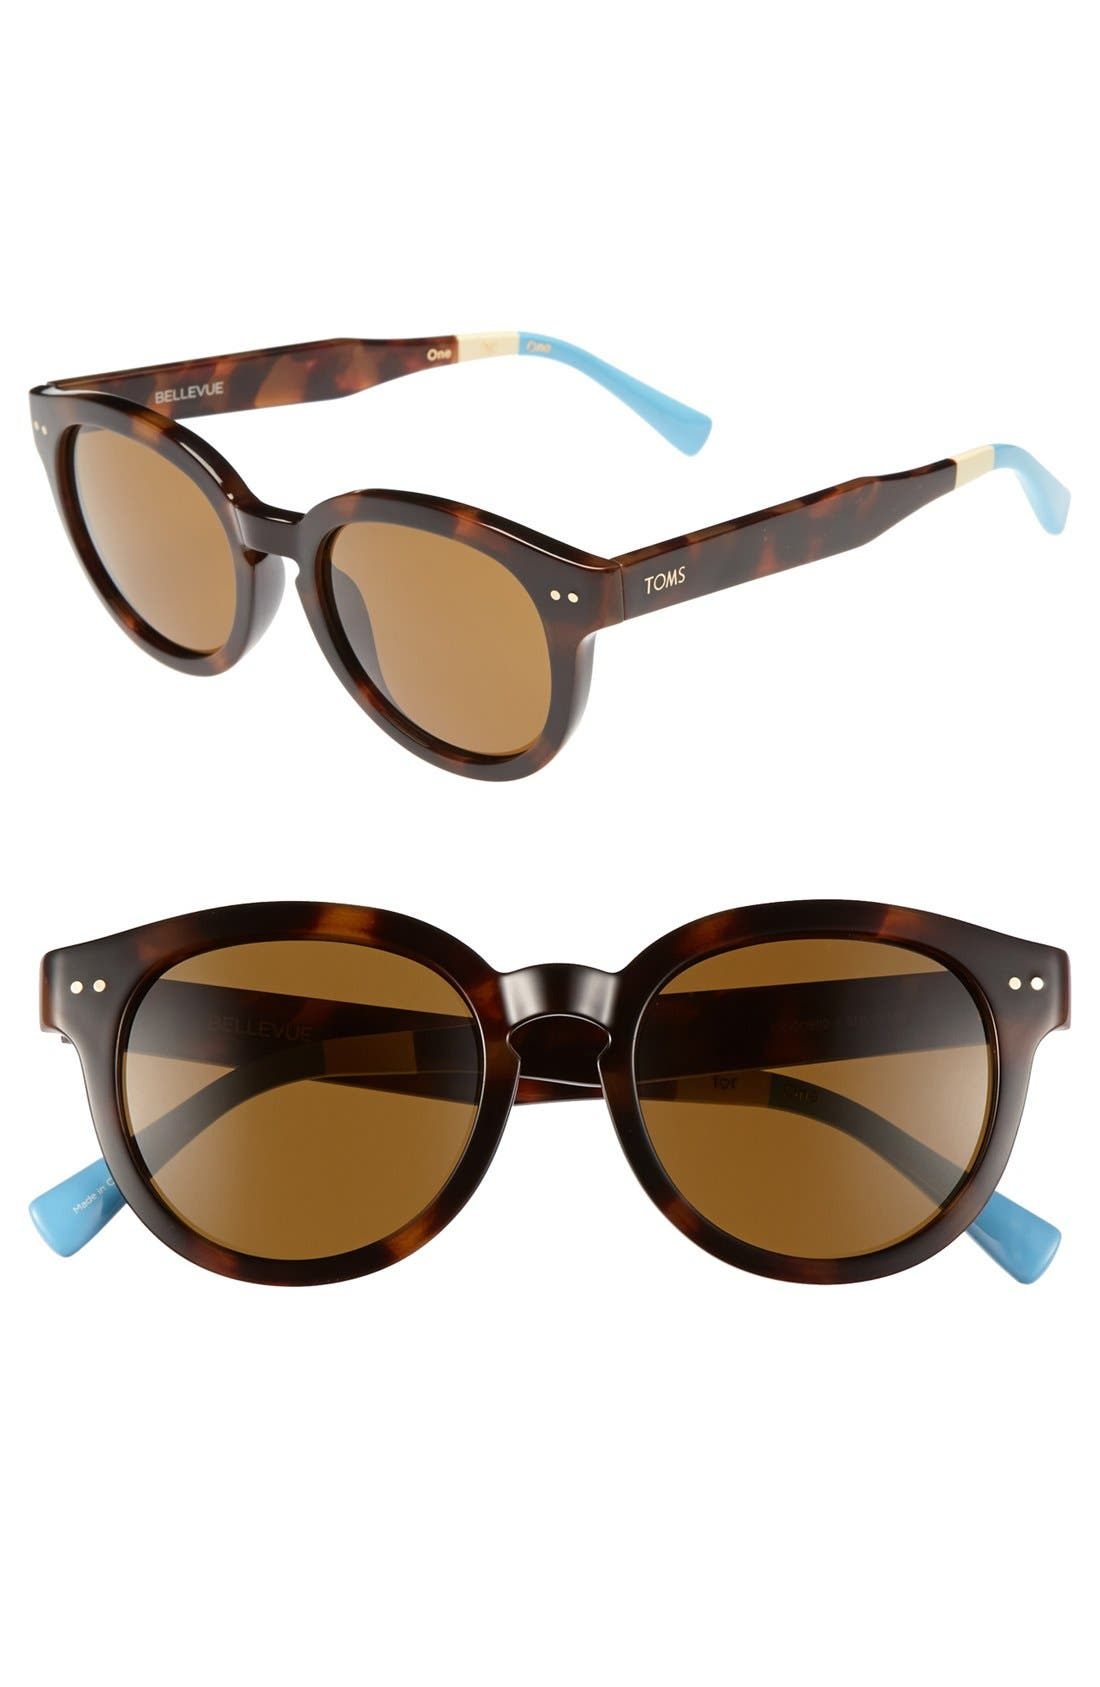 Alternate Image 1 Selected - TOMS 'Bellevue' 52mm Sunglasses